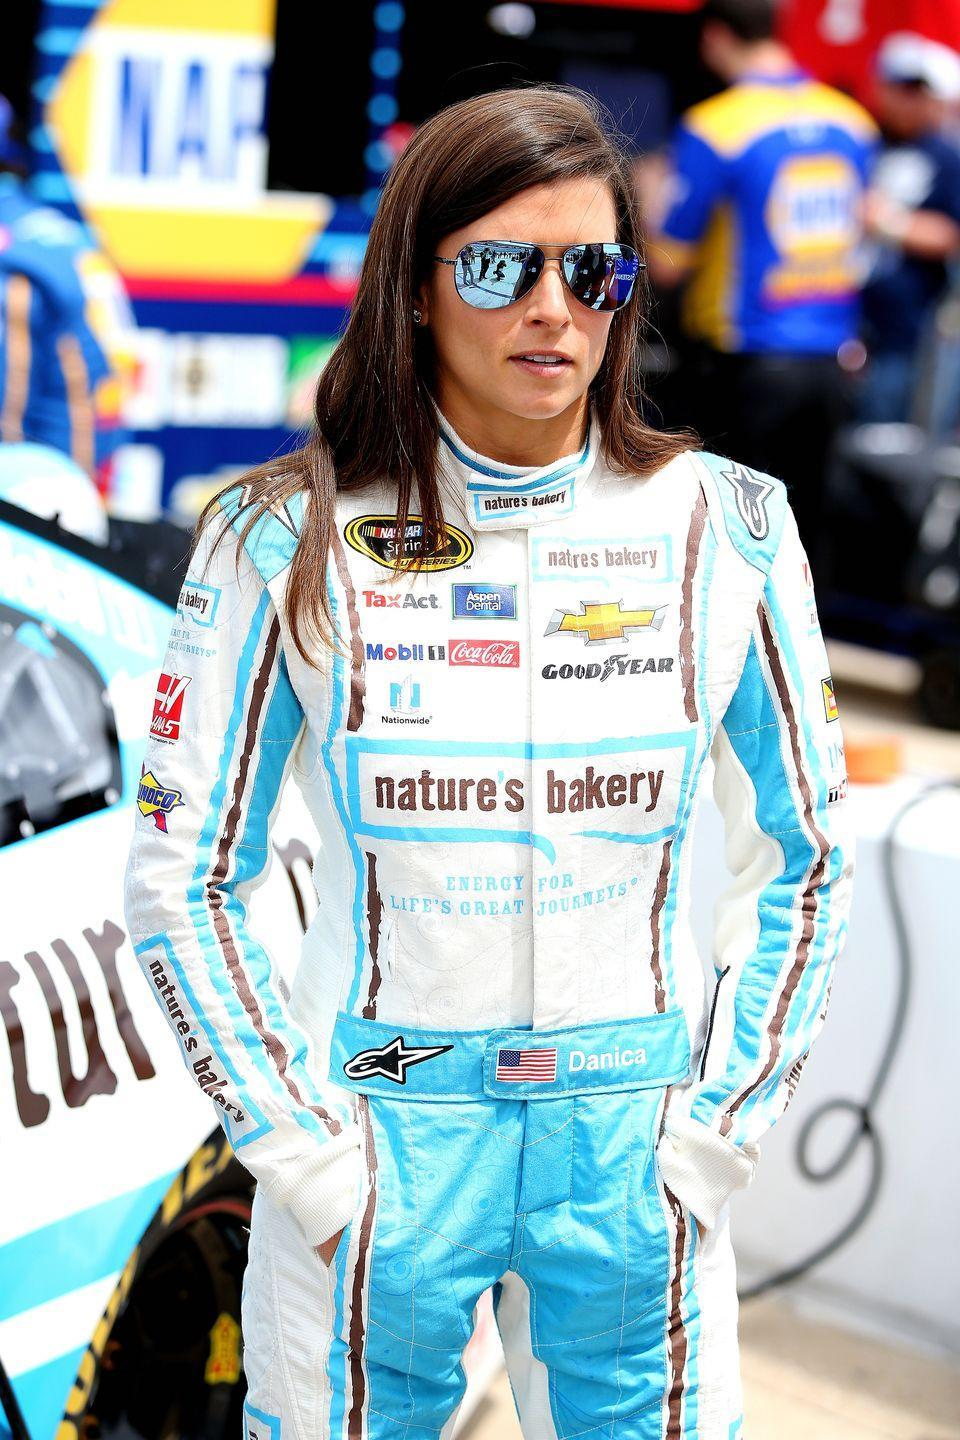 """<p>NASCAR driver <a href=""""https://www.delish.com/food-news/a46721/danica-patrick-diet/"""" rel=""""nofollow noopener"""" target=""""_blank"""" data-ylk=""""slk:Danica Patrick"""" class=""""link rapid-noclick-resp"""">Danica Patrick</a> is obviously fearless on the track, but apparently she's also quite adventurous in the kitchen. Patrick told Delish she has no boundaries when it comes to meat. She's even whipped up bison burgers, and had steak on her waffles. </p>"""